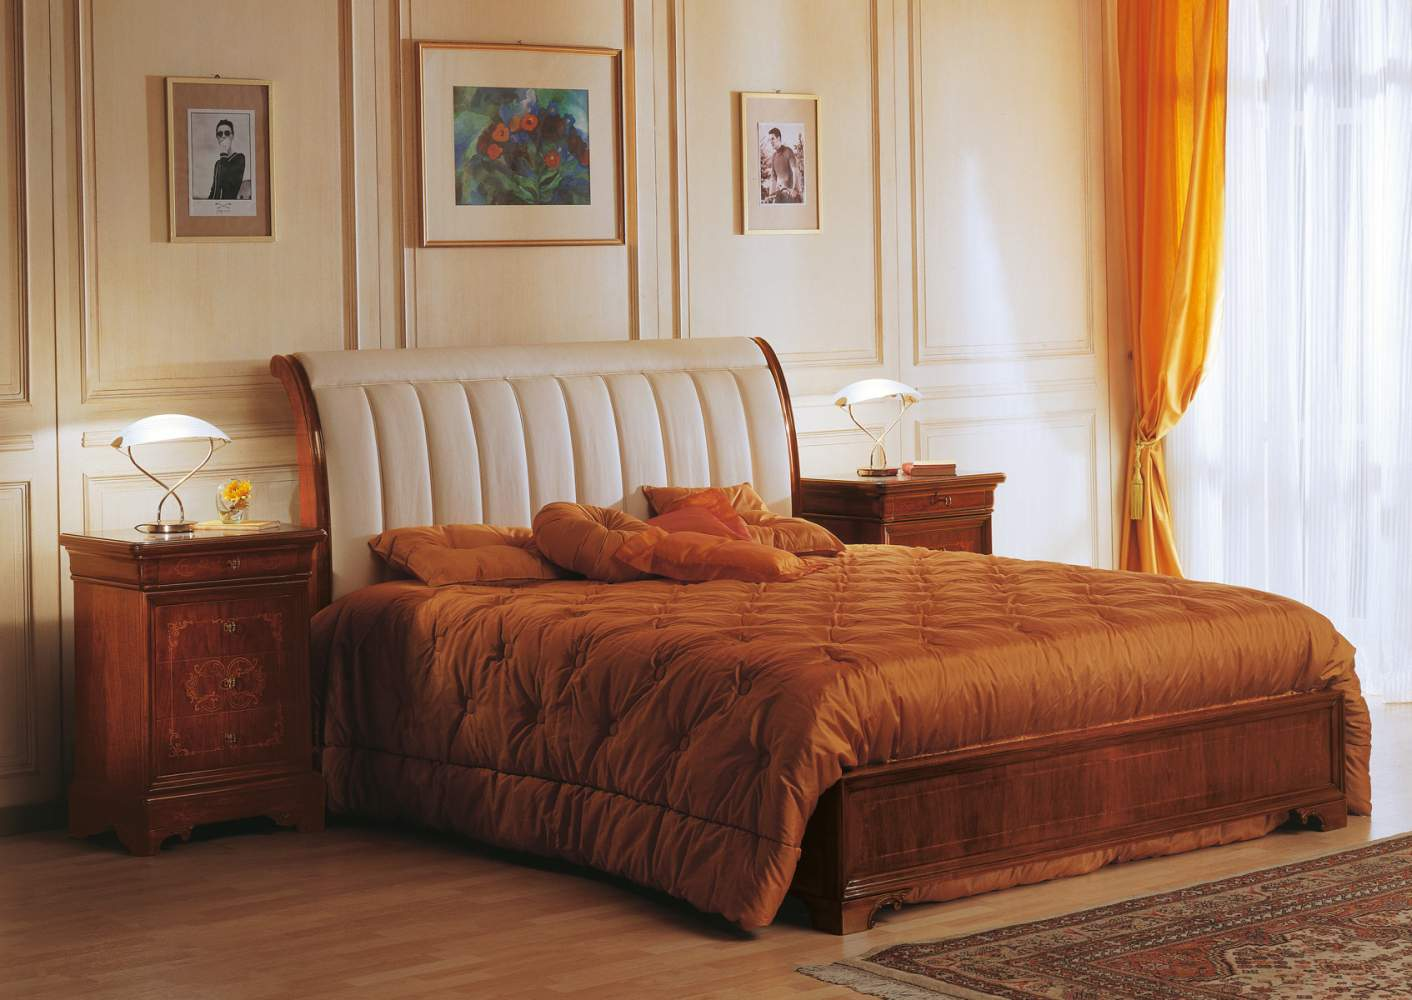 19th century french bedroom, bed with headboard in leather